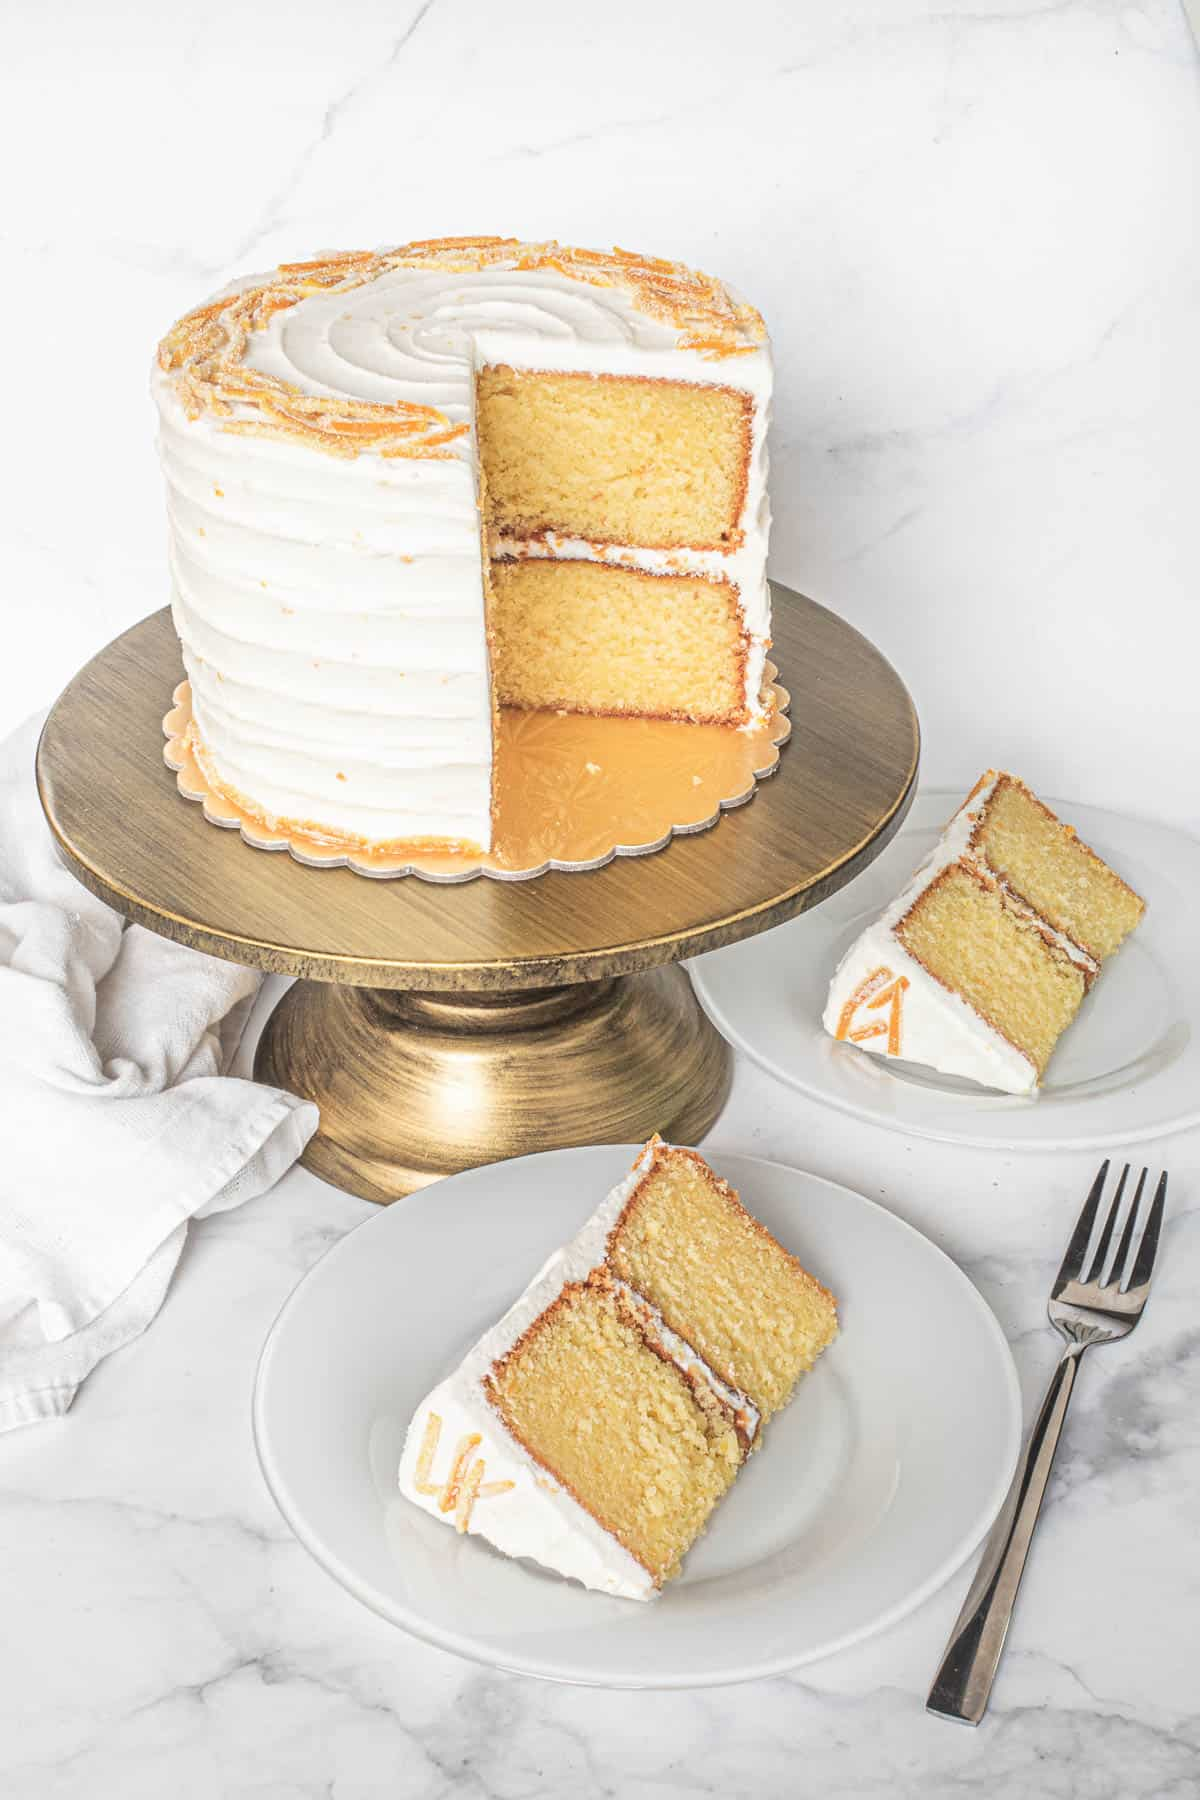 A round cake decorated with candied orange peels. 2 slices are cut out onto white plates